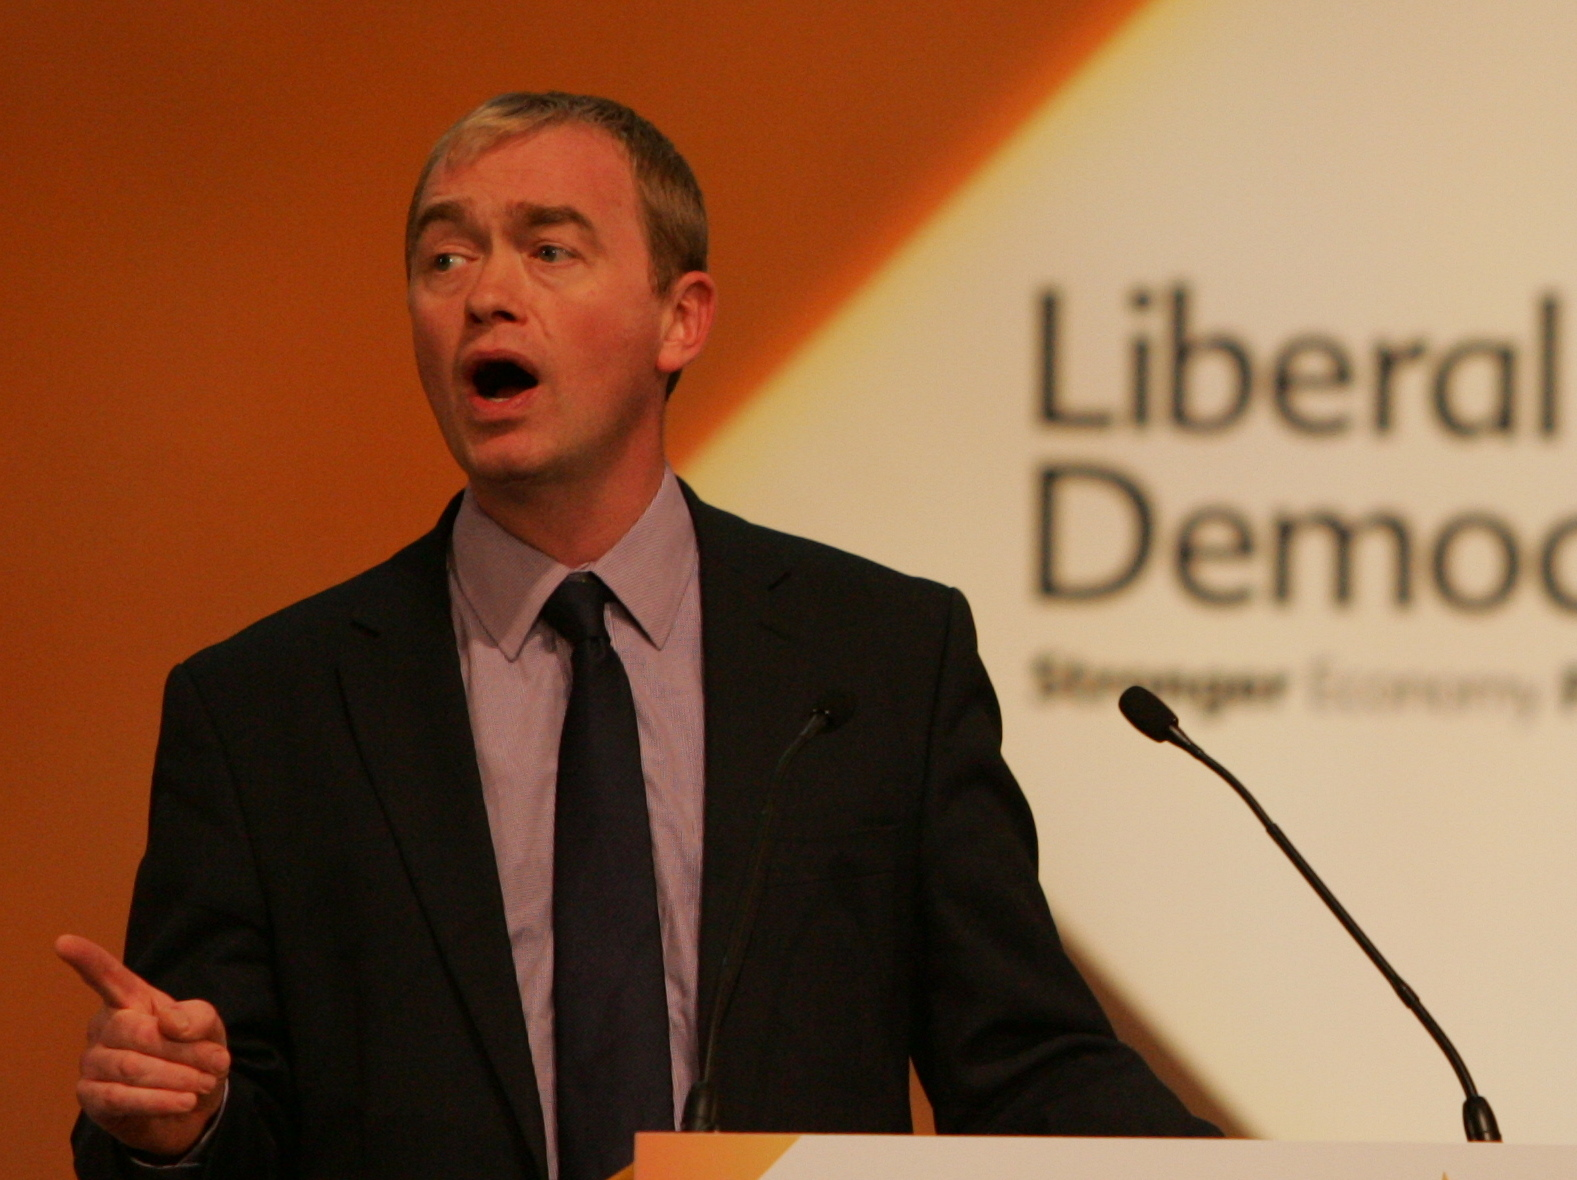 The fall of Farron: neither liberal nor democratic